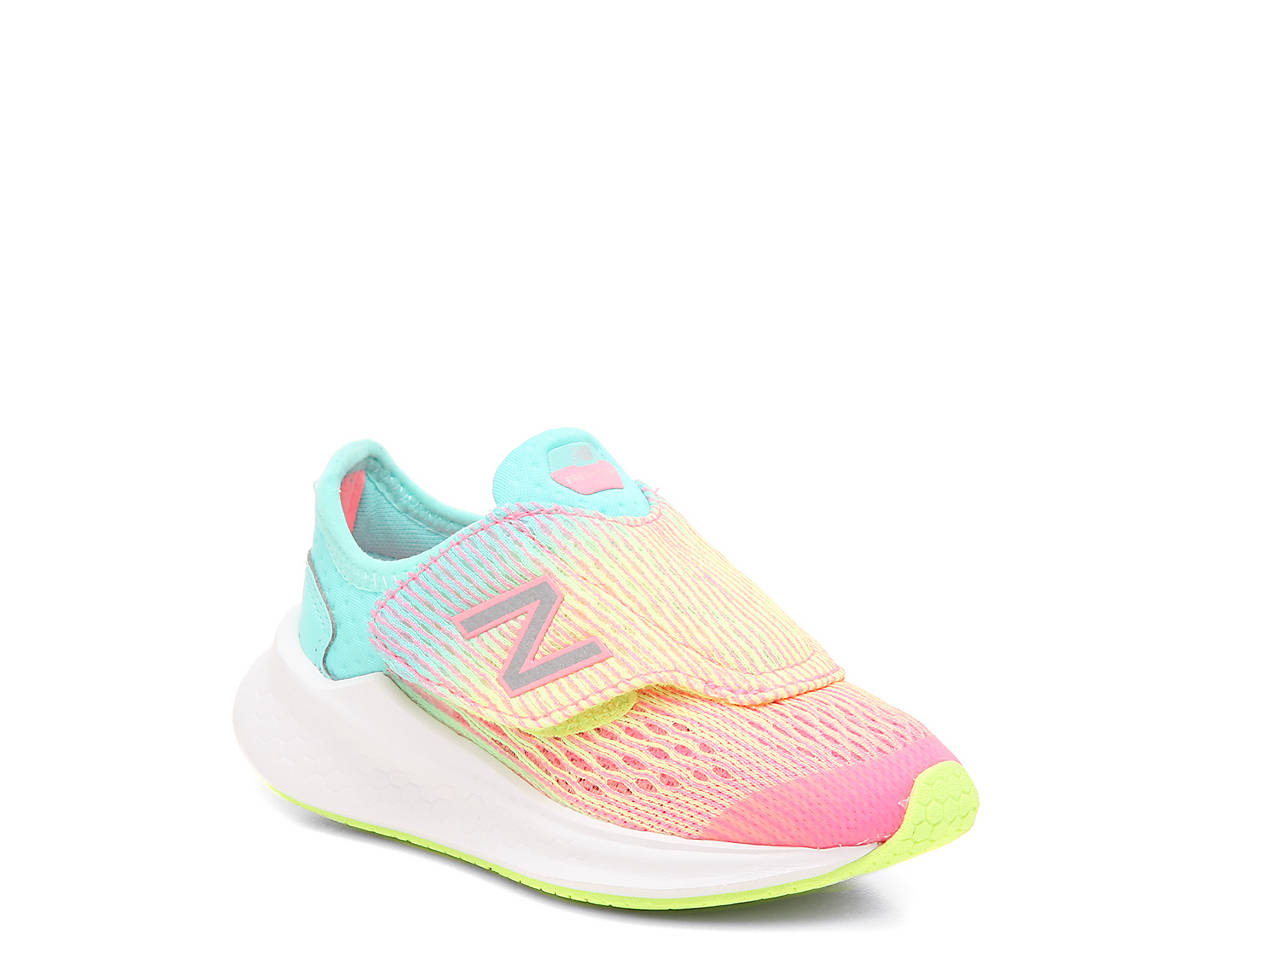 5bd6948543855 New Balance Fresh Foam Fast Sneaker - Kids' Kids Shoes | DSW